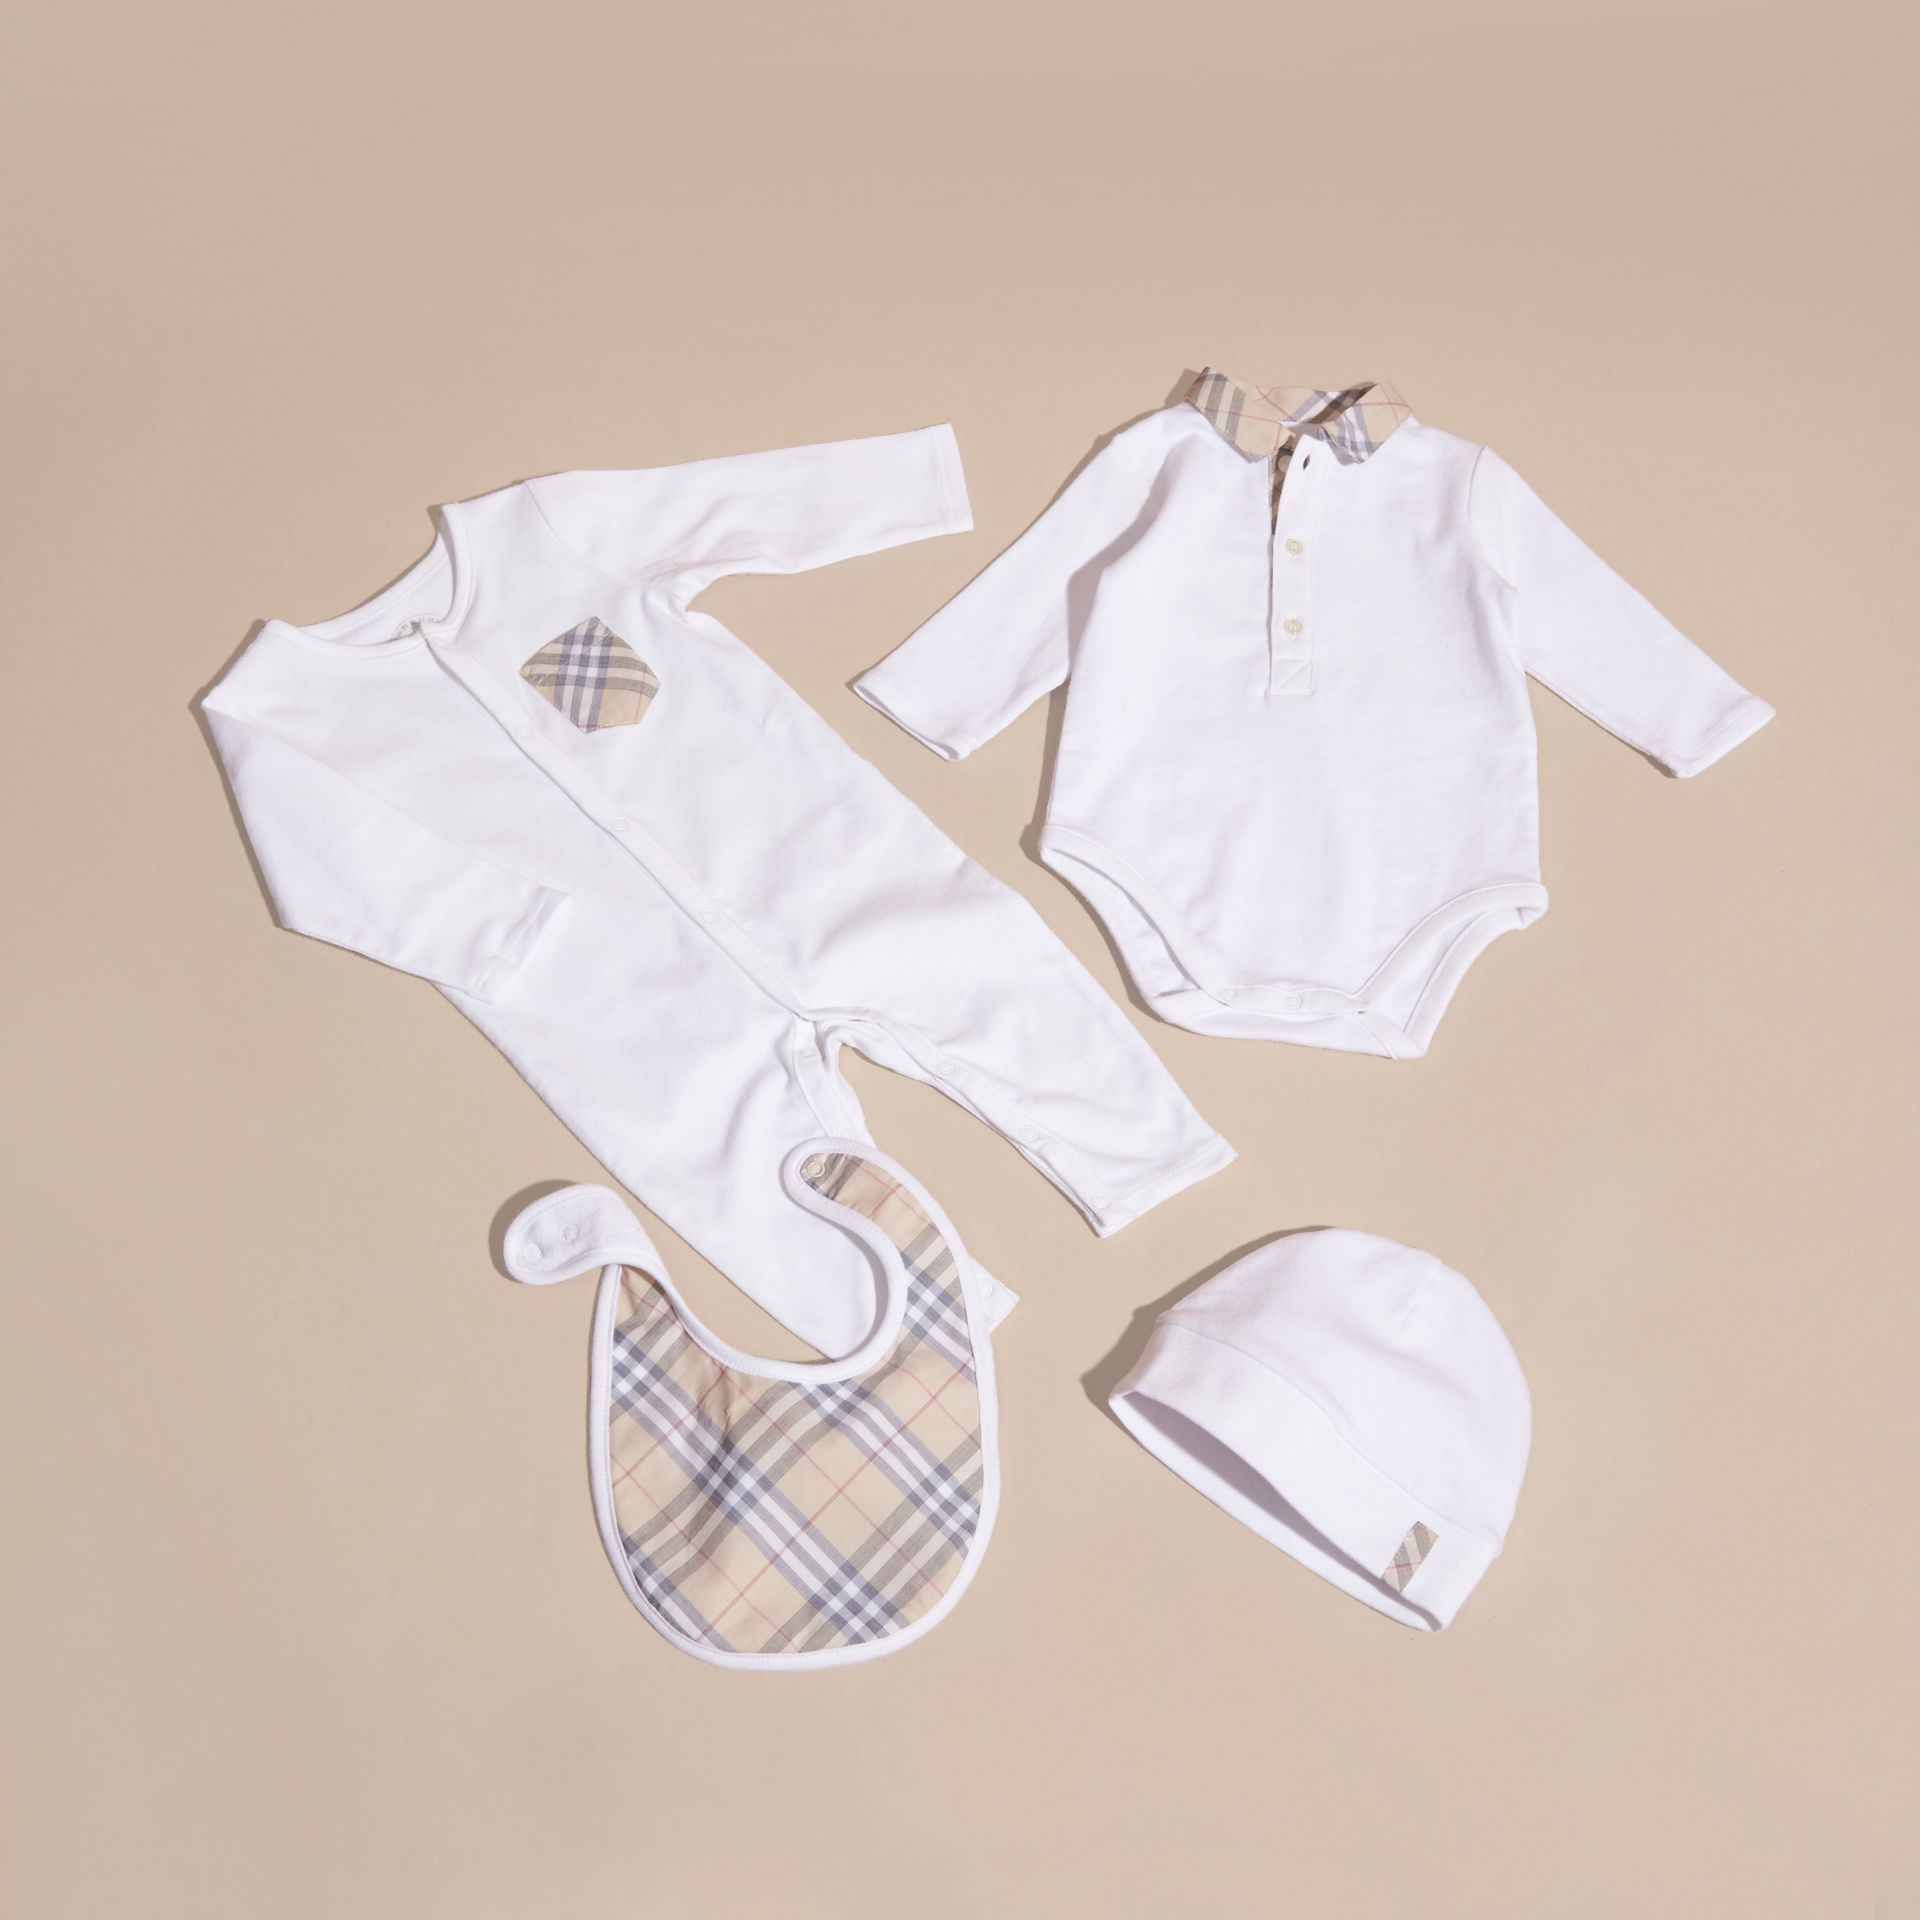 Cotton Six-piece Baby Gift Set - gallery image 3